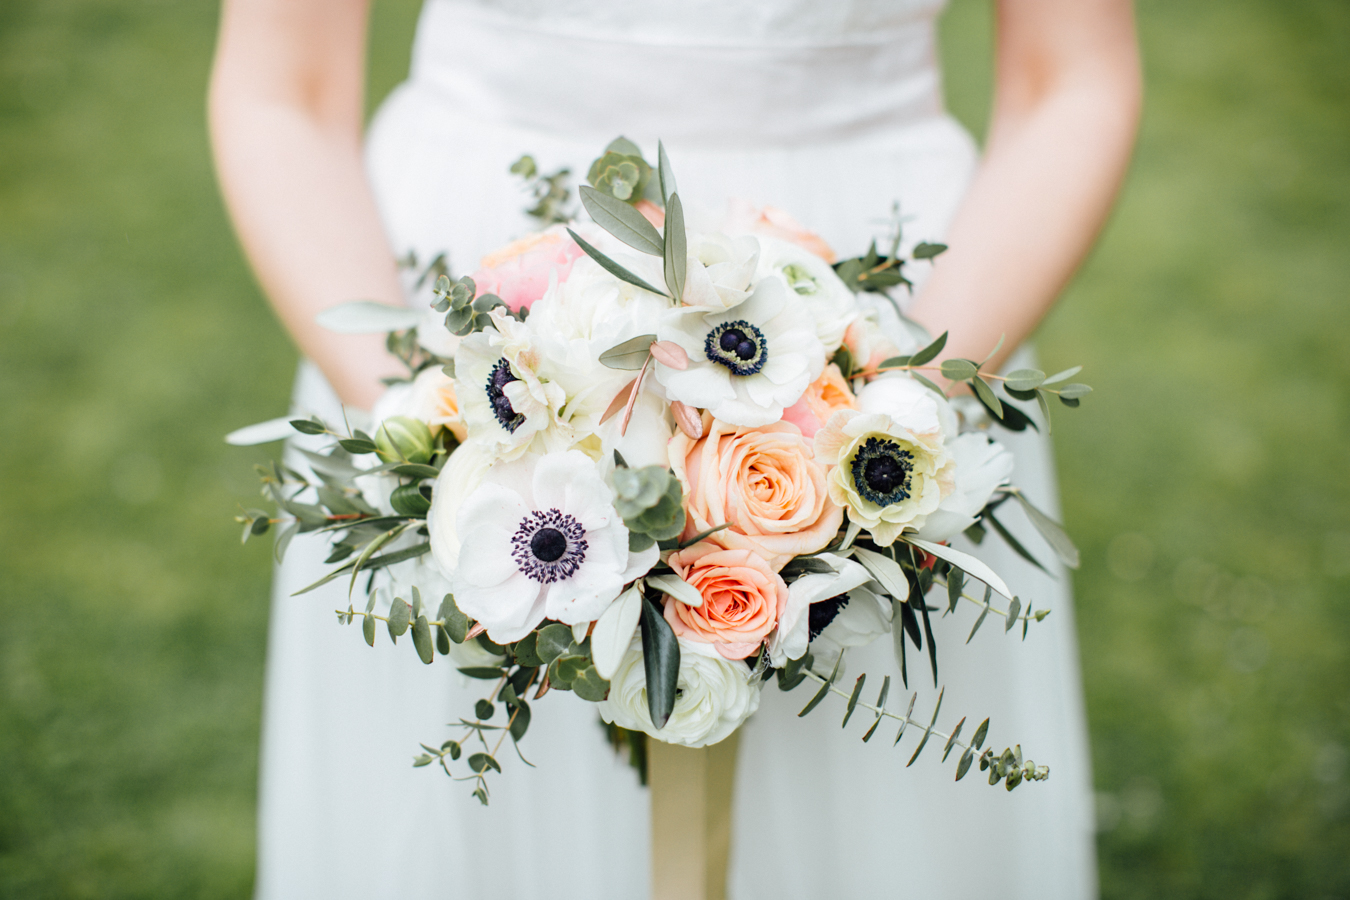 STEP 3 ·Create a budget - Many times, wedding planners have one set-priced package with all essentials included. If this is not the case, then consult with your significant other and create a budget that works for you both and stick to it!